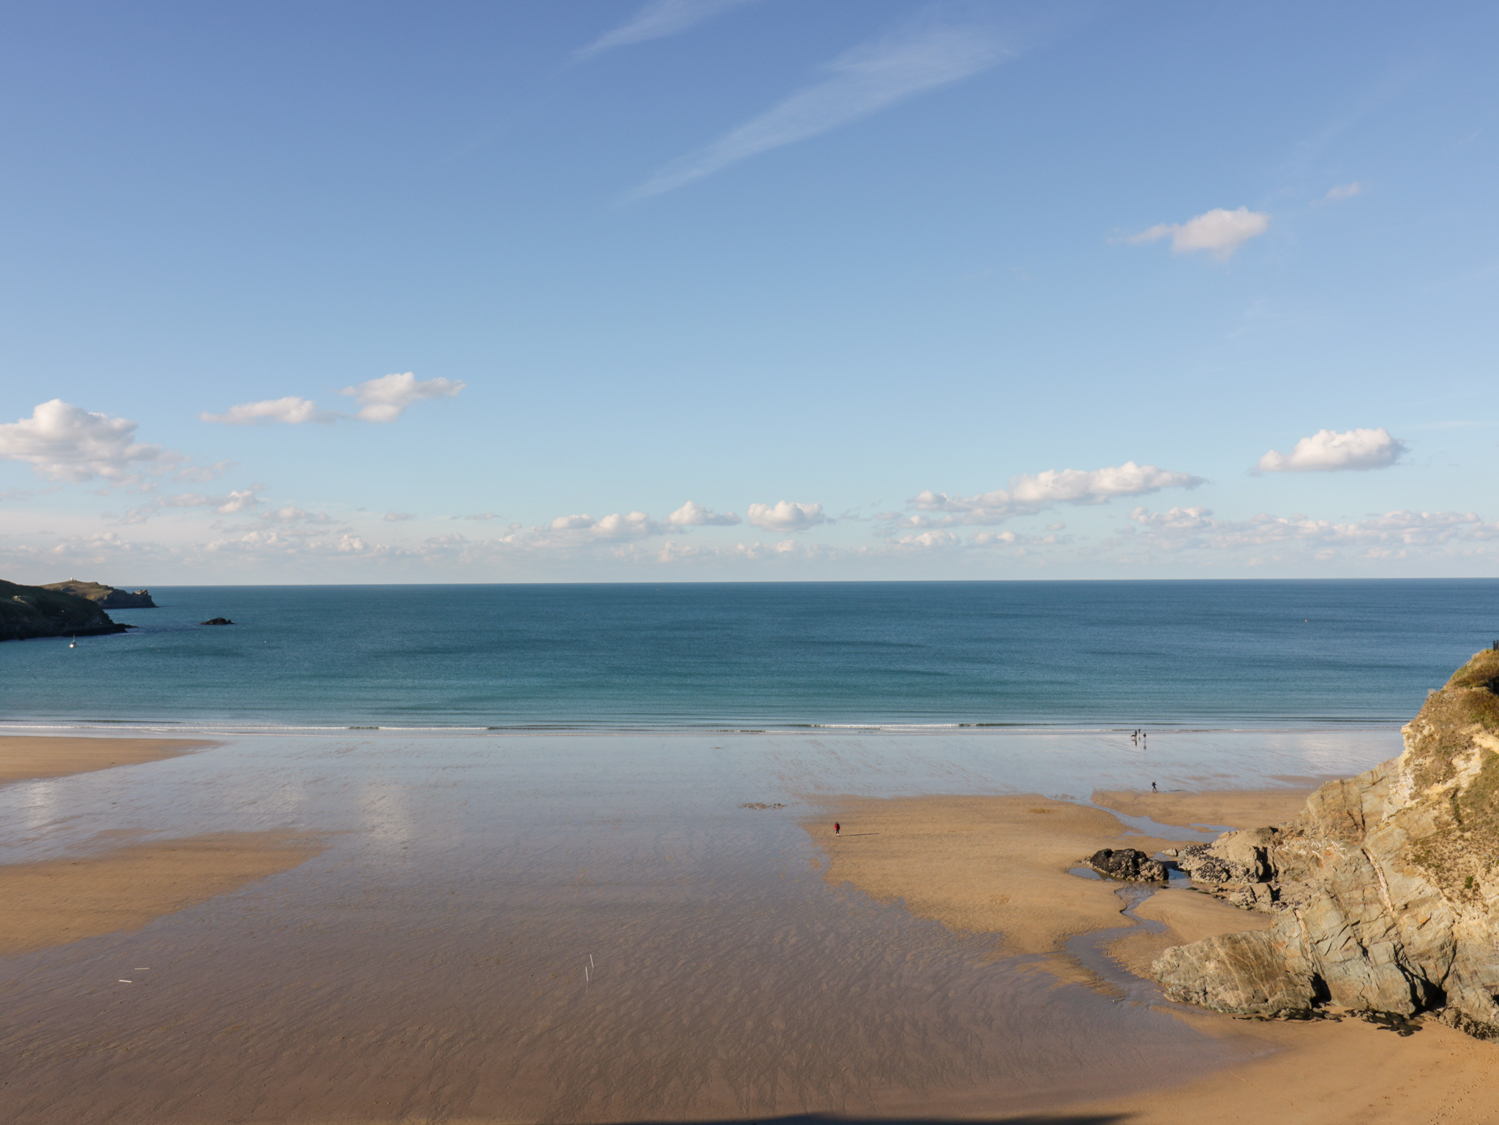 Newquay Bay View Image 1